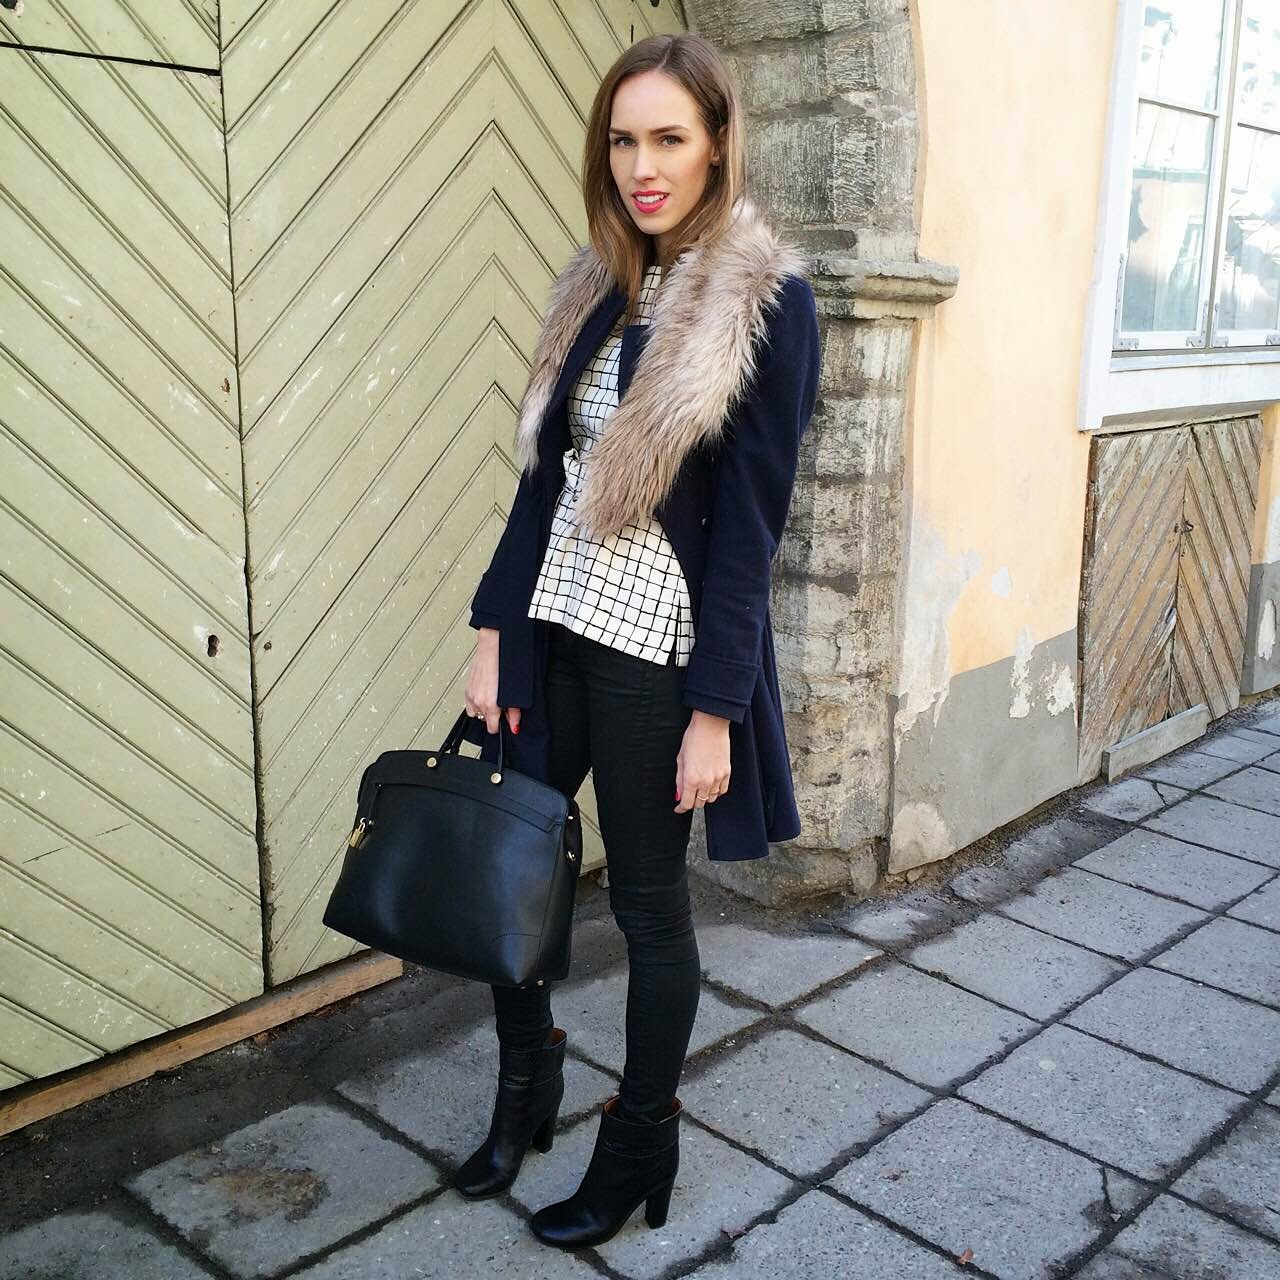 faux-fur-stole-gingham-top-outfit-winter-style-trend